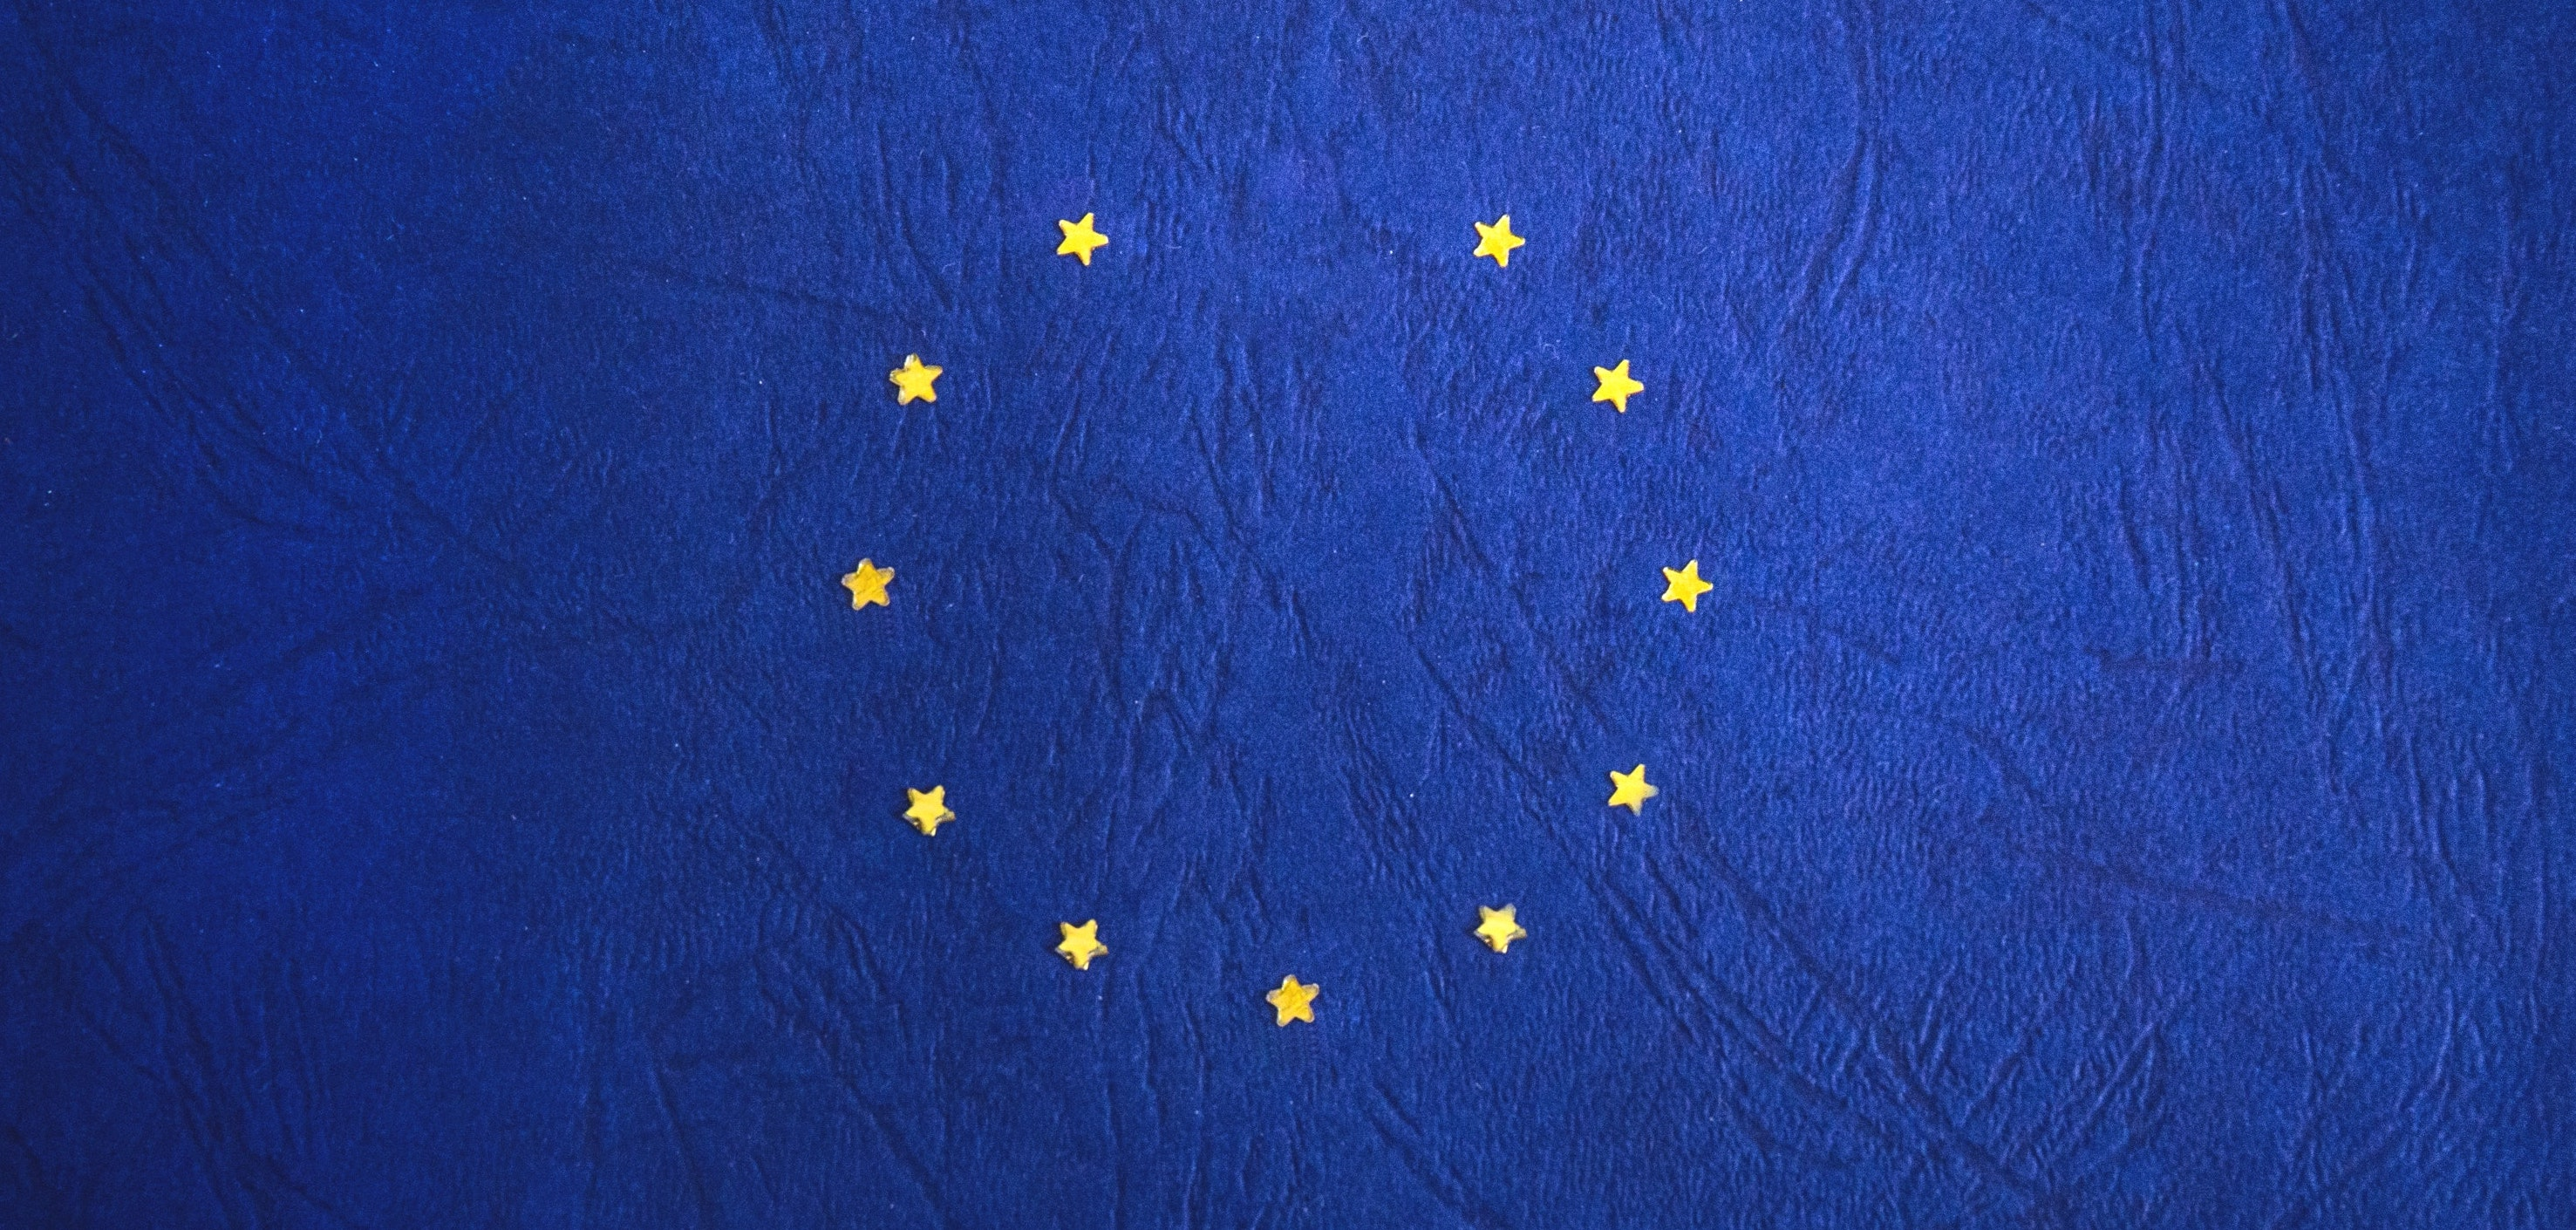 Brexit: Its implications on European Union's Defence Policy